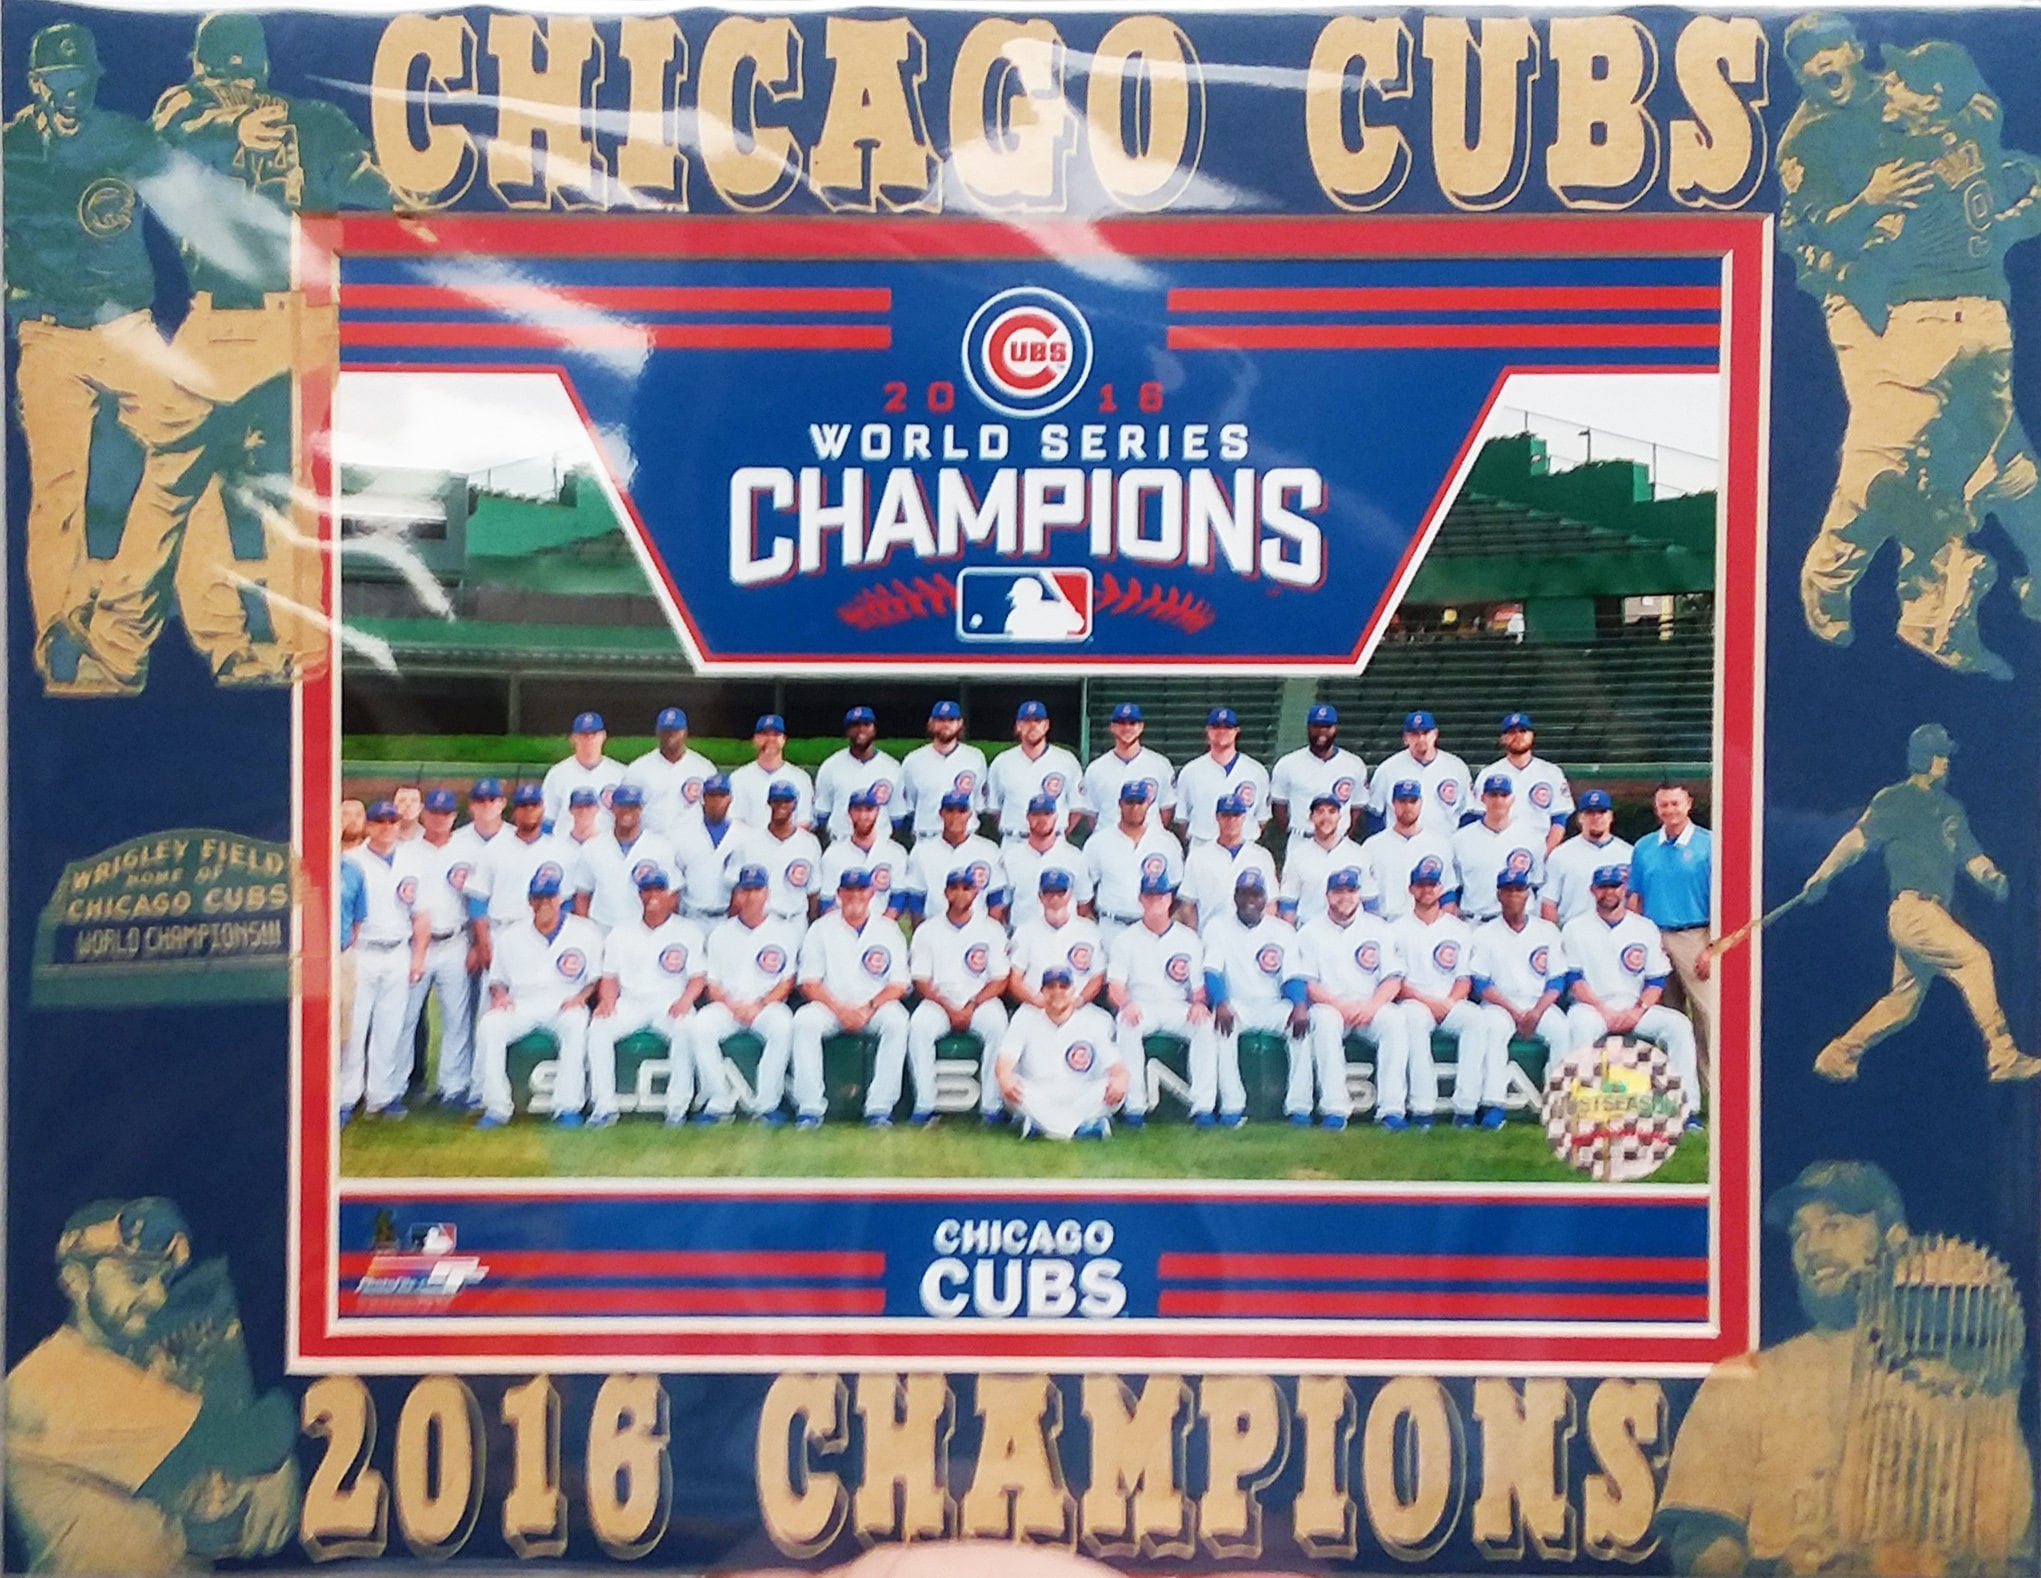 6c03f673c Chicago Cubs 2016 World Series Champions matted team photo